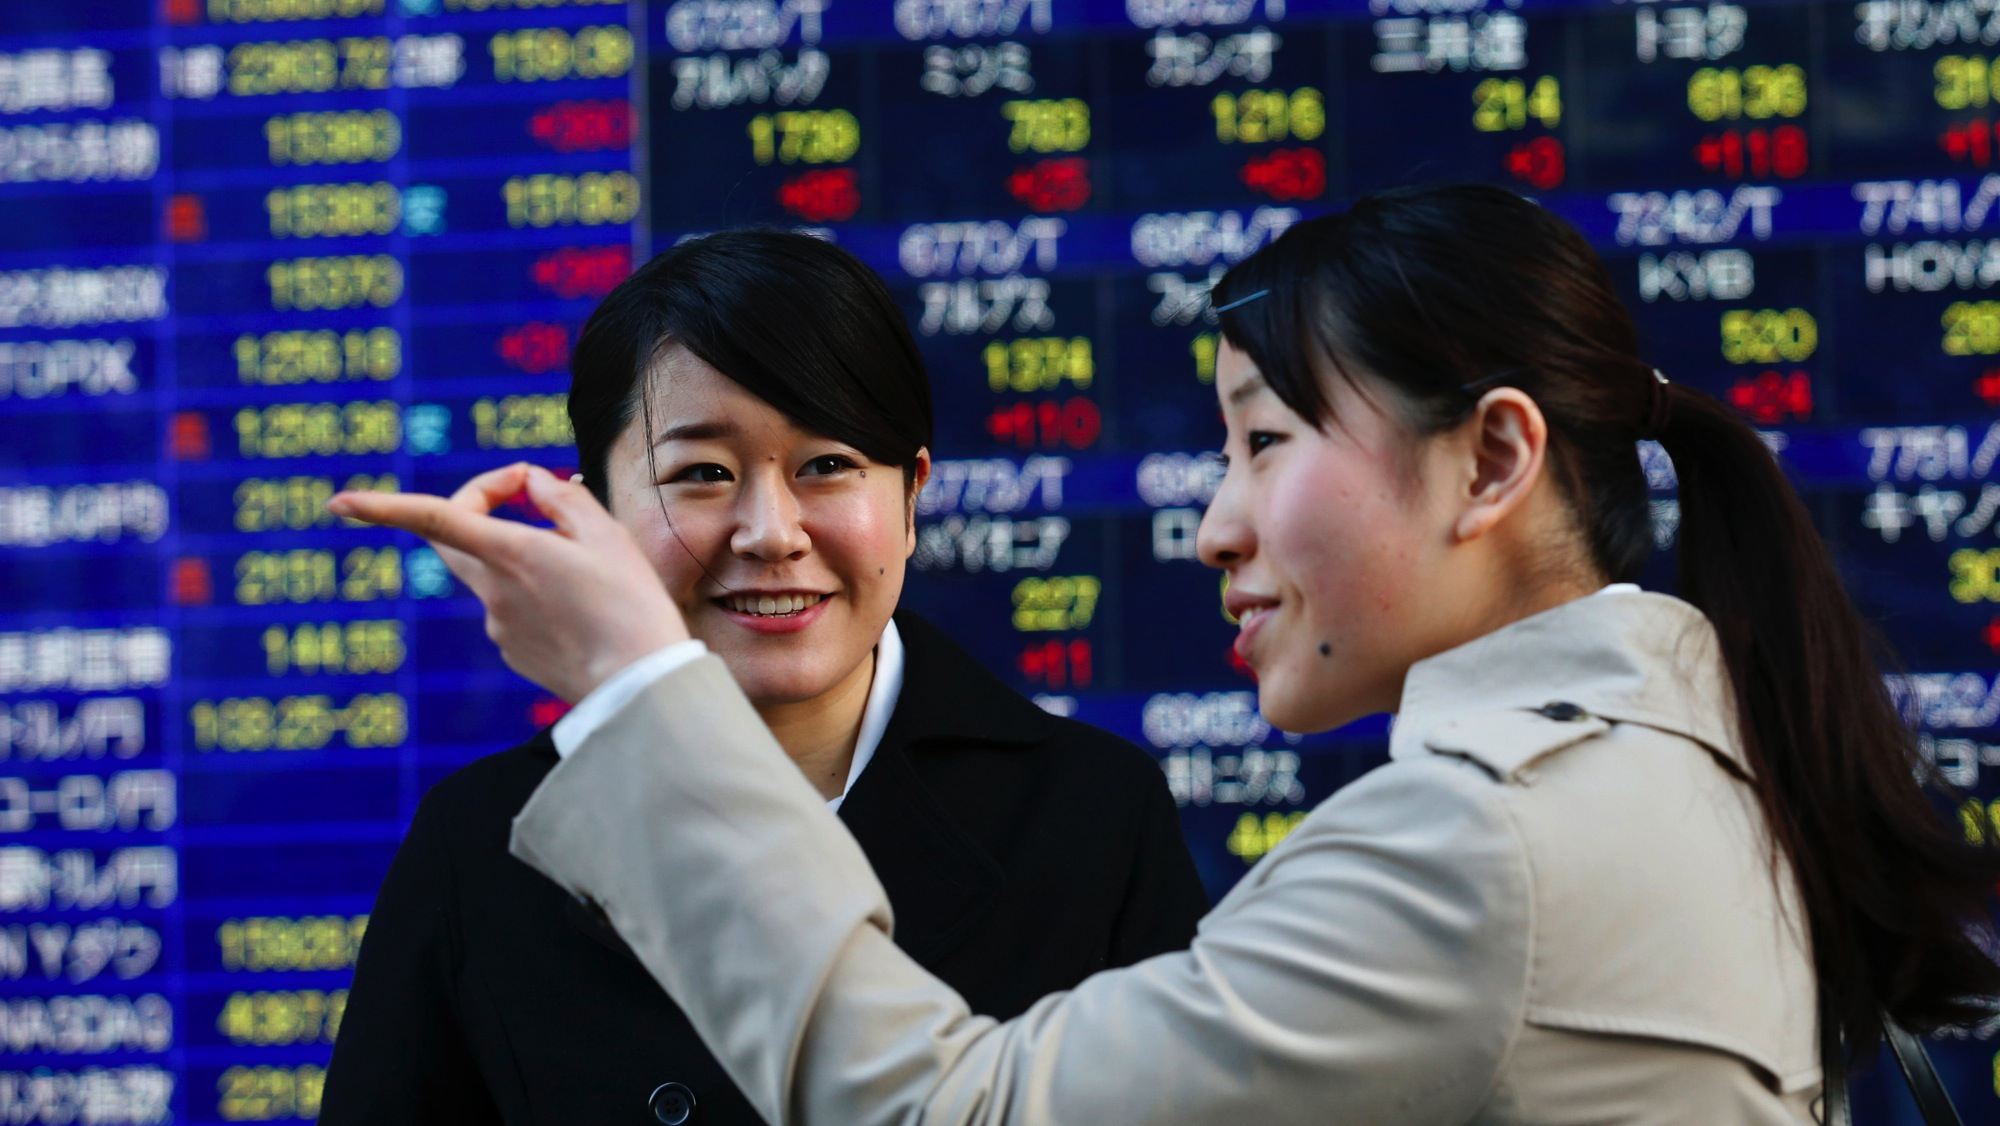 Women chat in front of a securities firm in Tokyo, Wednesday, Jan. 29, 2014. Global stock markets rose Wednesday as jitters about emerging economies were soothed by the Turkish central bank's aggressive interest rate hike to stabilize its currency and China's infusion of funds into its banking system. Japan's Nikkei 225 jumped 2.7 percent, closing at 15,383.91. (AP Photo/Shizuo Kambayashi)